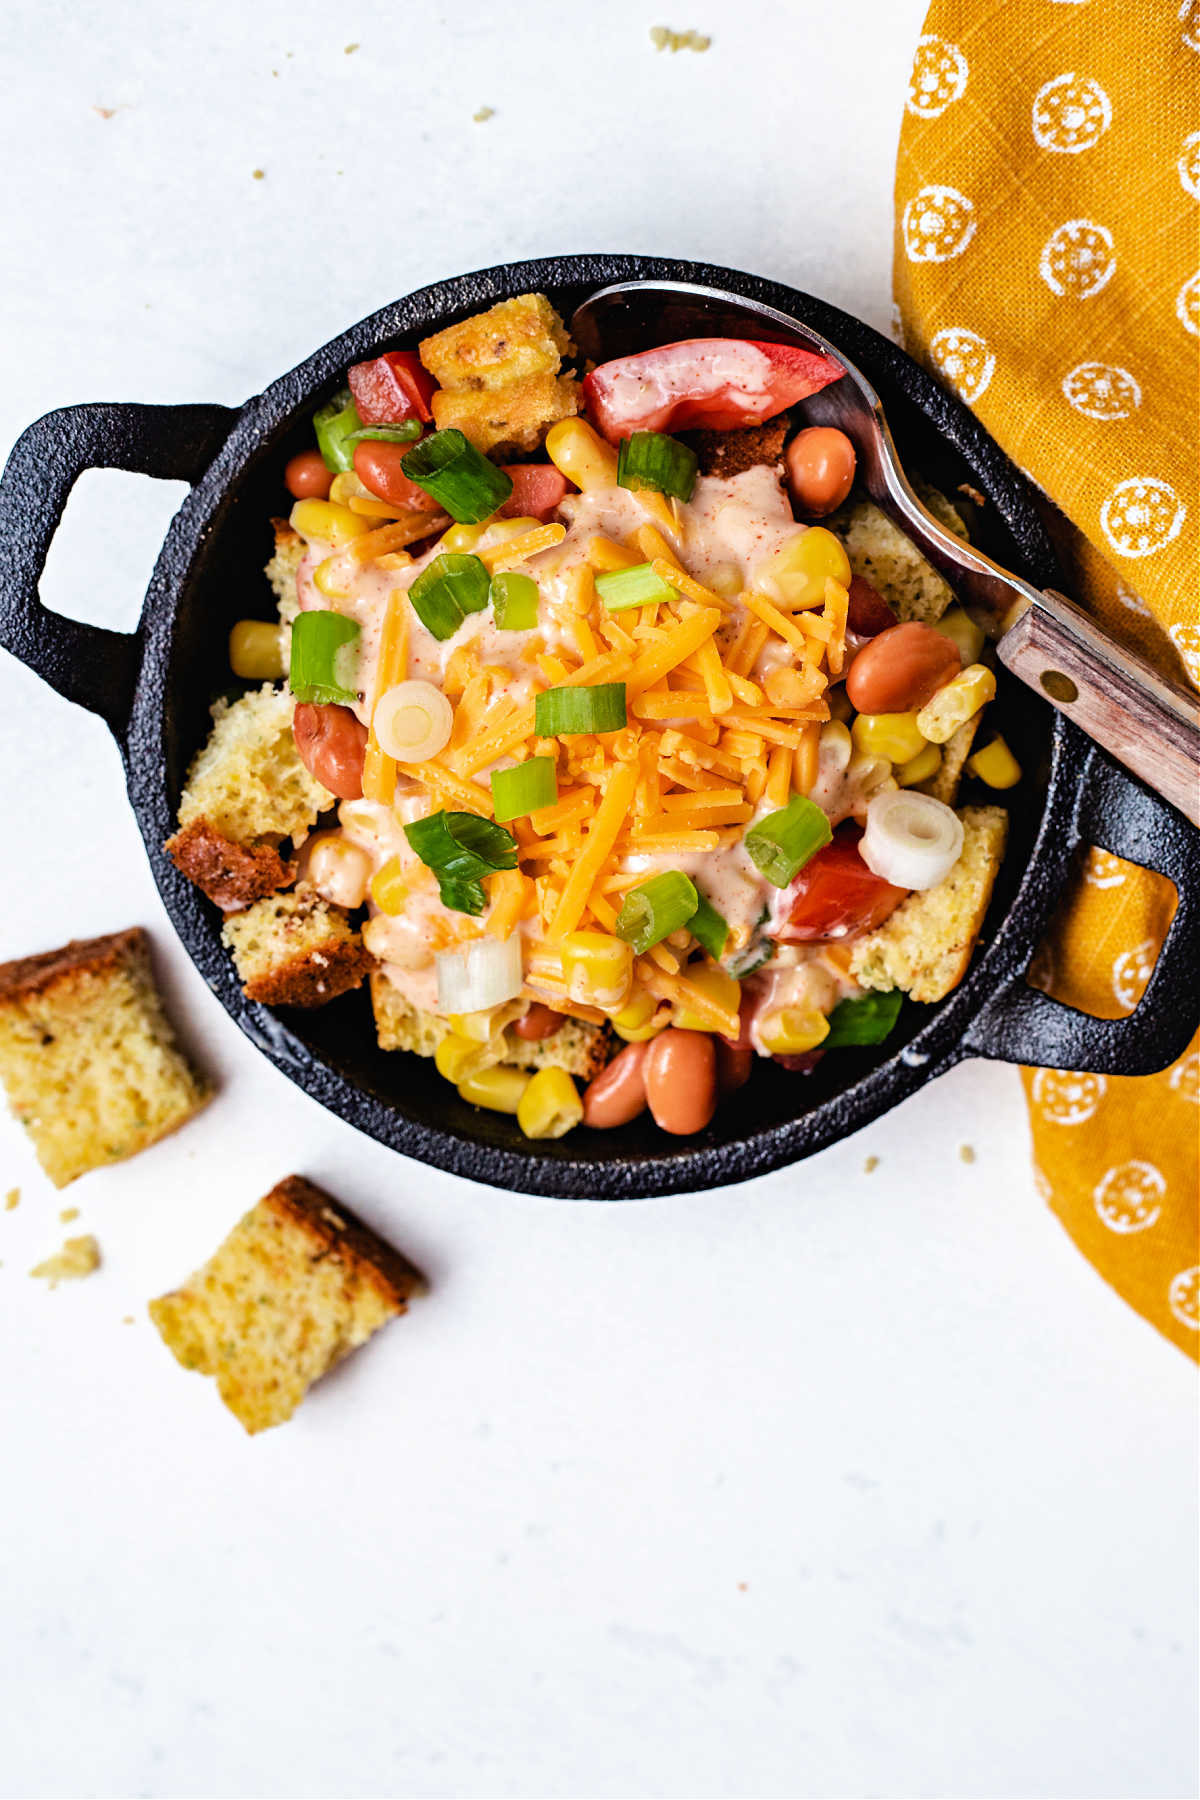 top down view of a serving of cornbread salad in a mini cast iron skilled with a spoon and yellow napkin on a table.